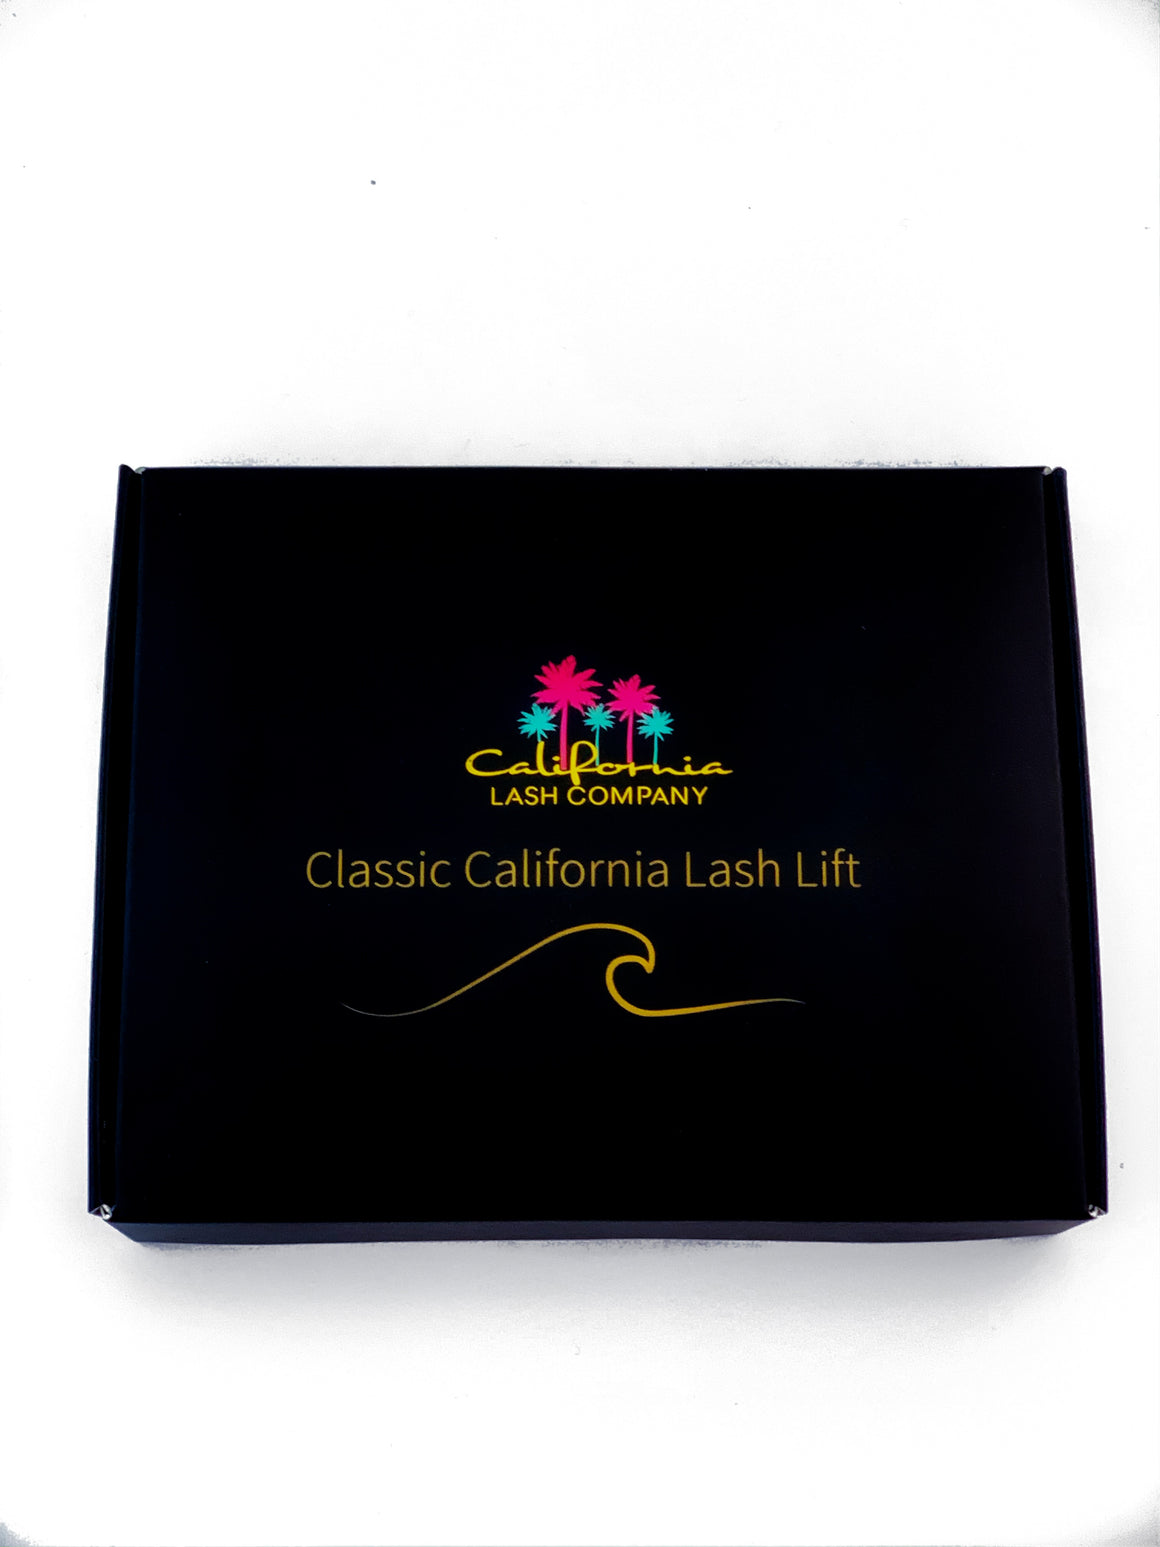 Classic California Lash Lift Kit